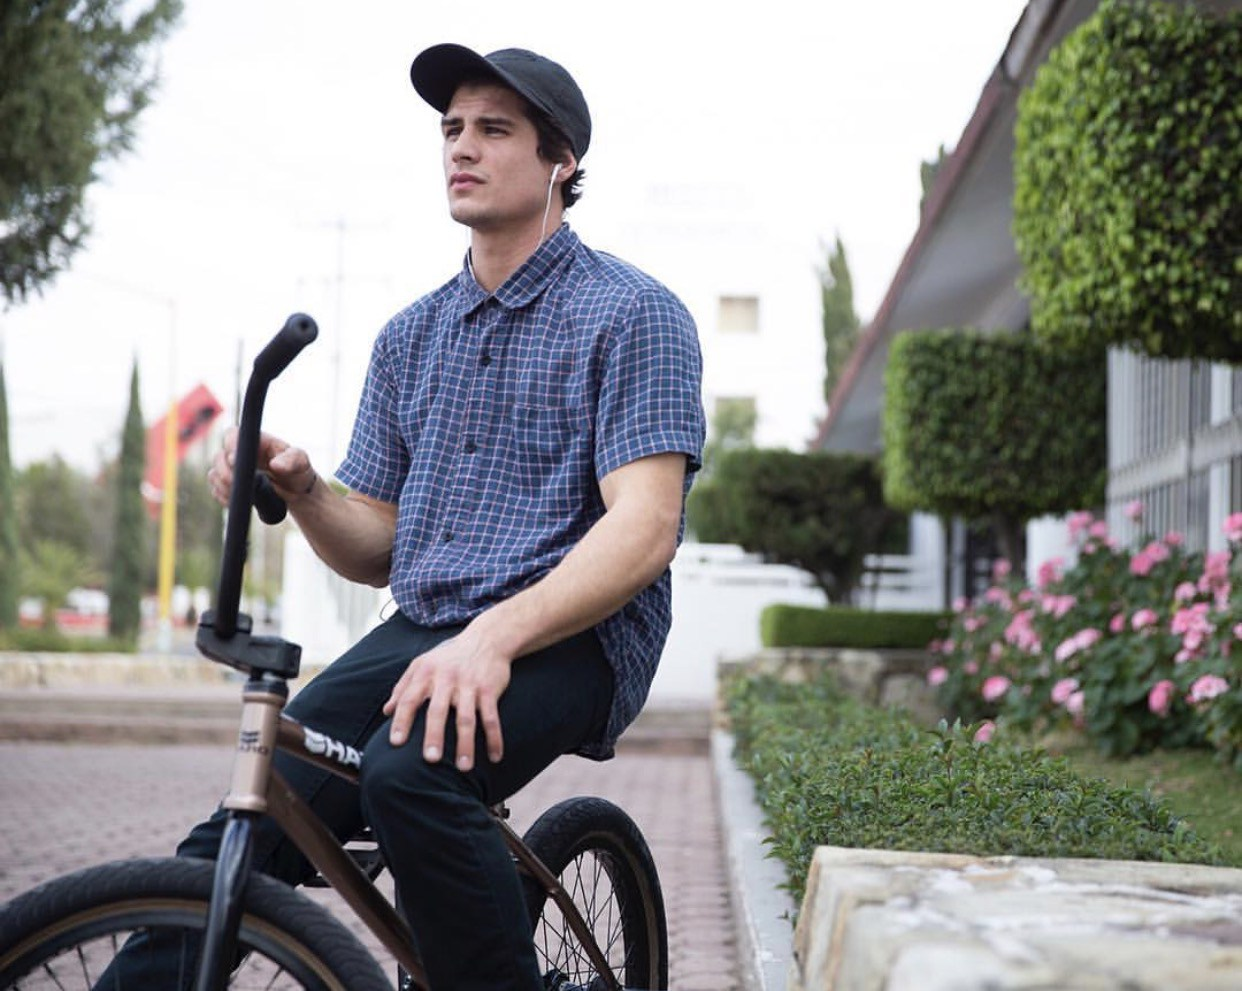 Mike Gray   Riding Style: BMX Birthday: November 10th, 1992 Riding since: 2000 From: Newmarket, Ontario. Canada